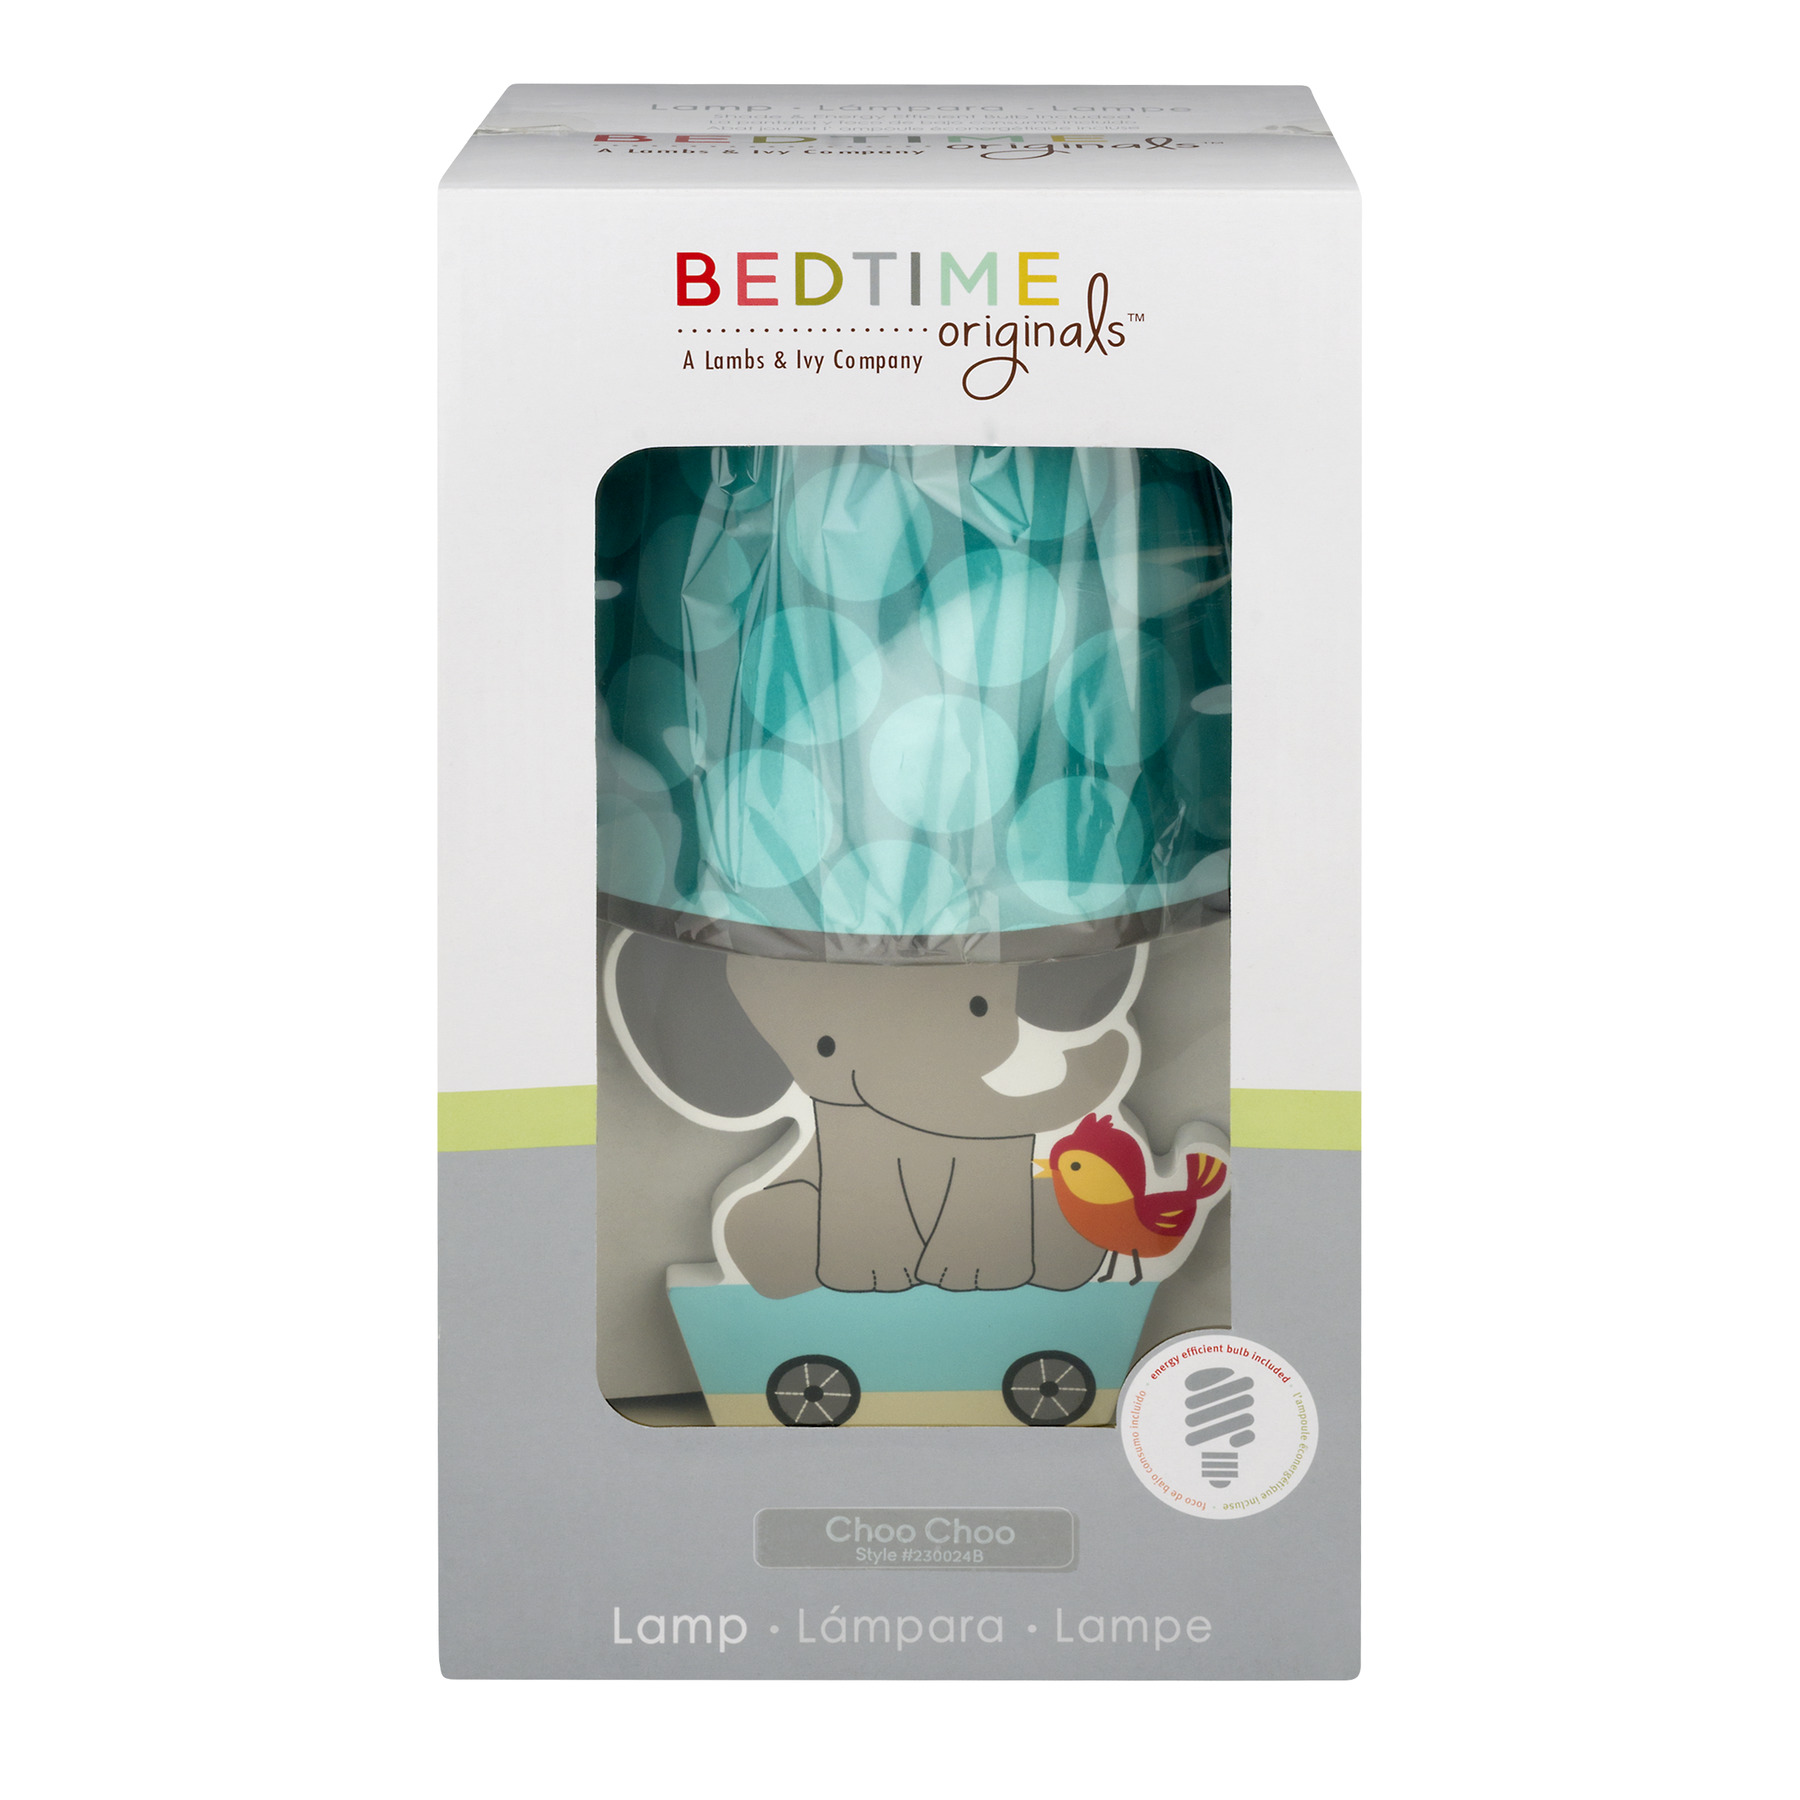 Bedtime Originals Lamp Choo Choo -1 CT1.0 CT